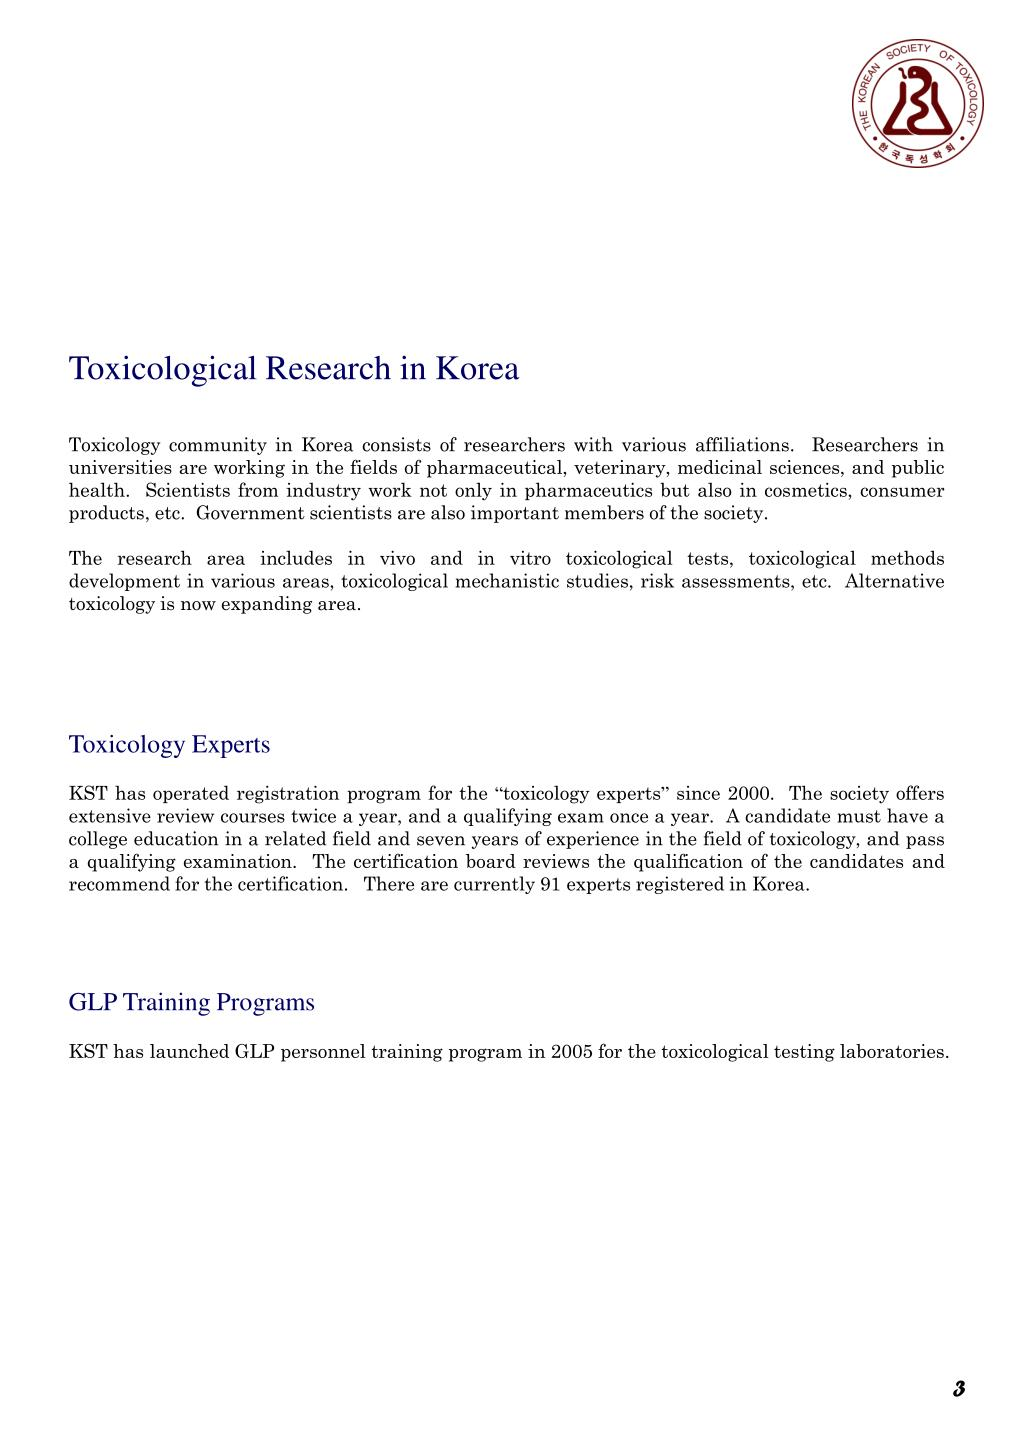 Toxicological Research in Korea